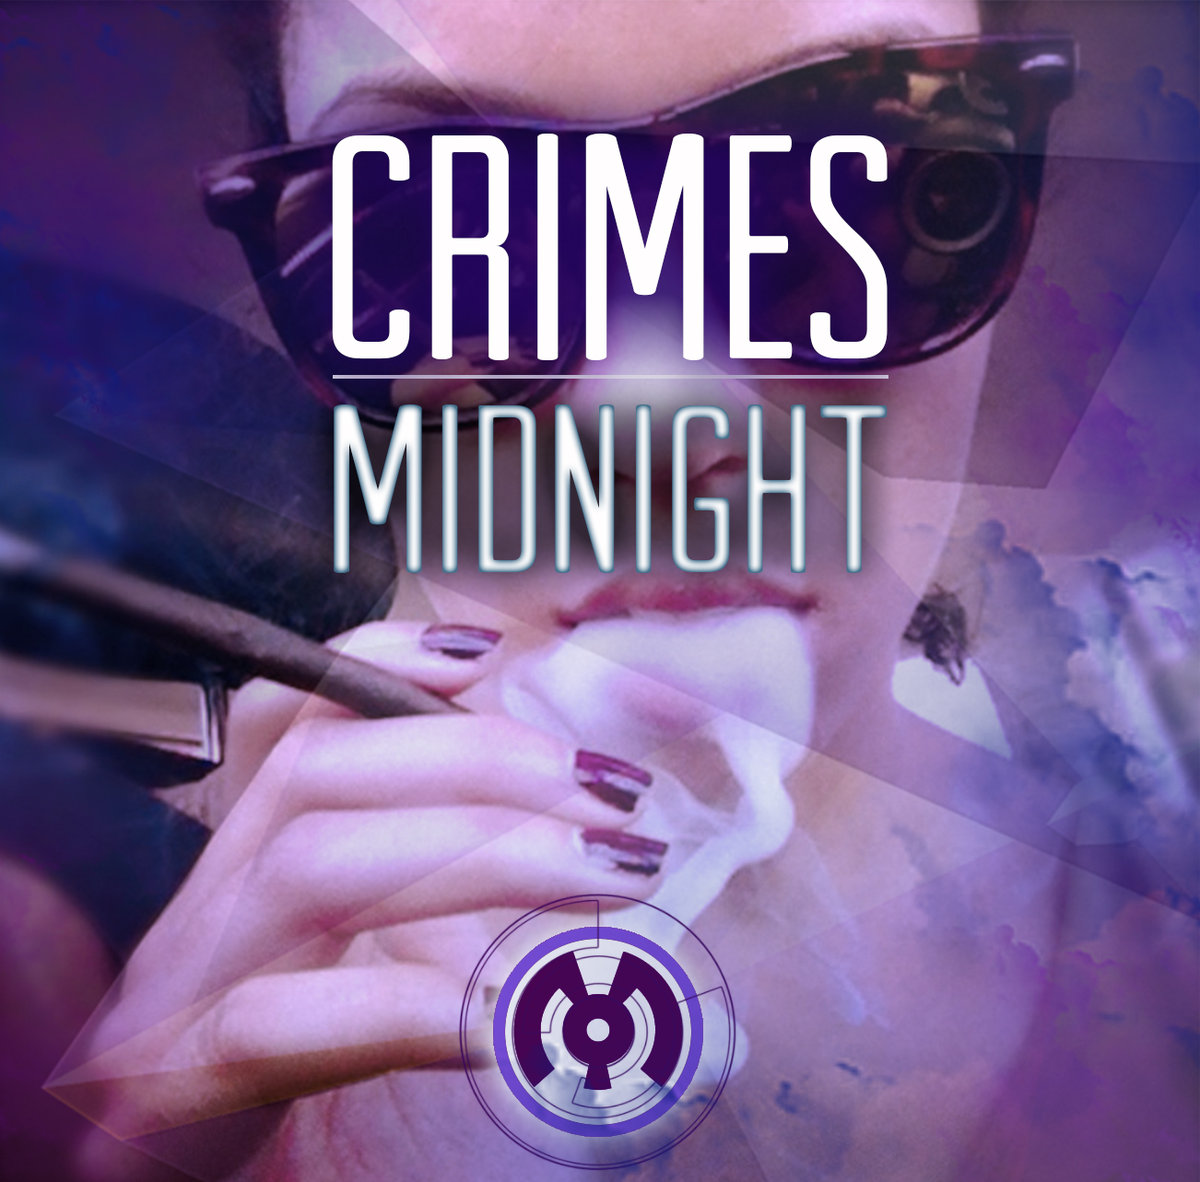 Crimes! - Feels @ 'Midnight' album (electronic, dubstep)